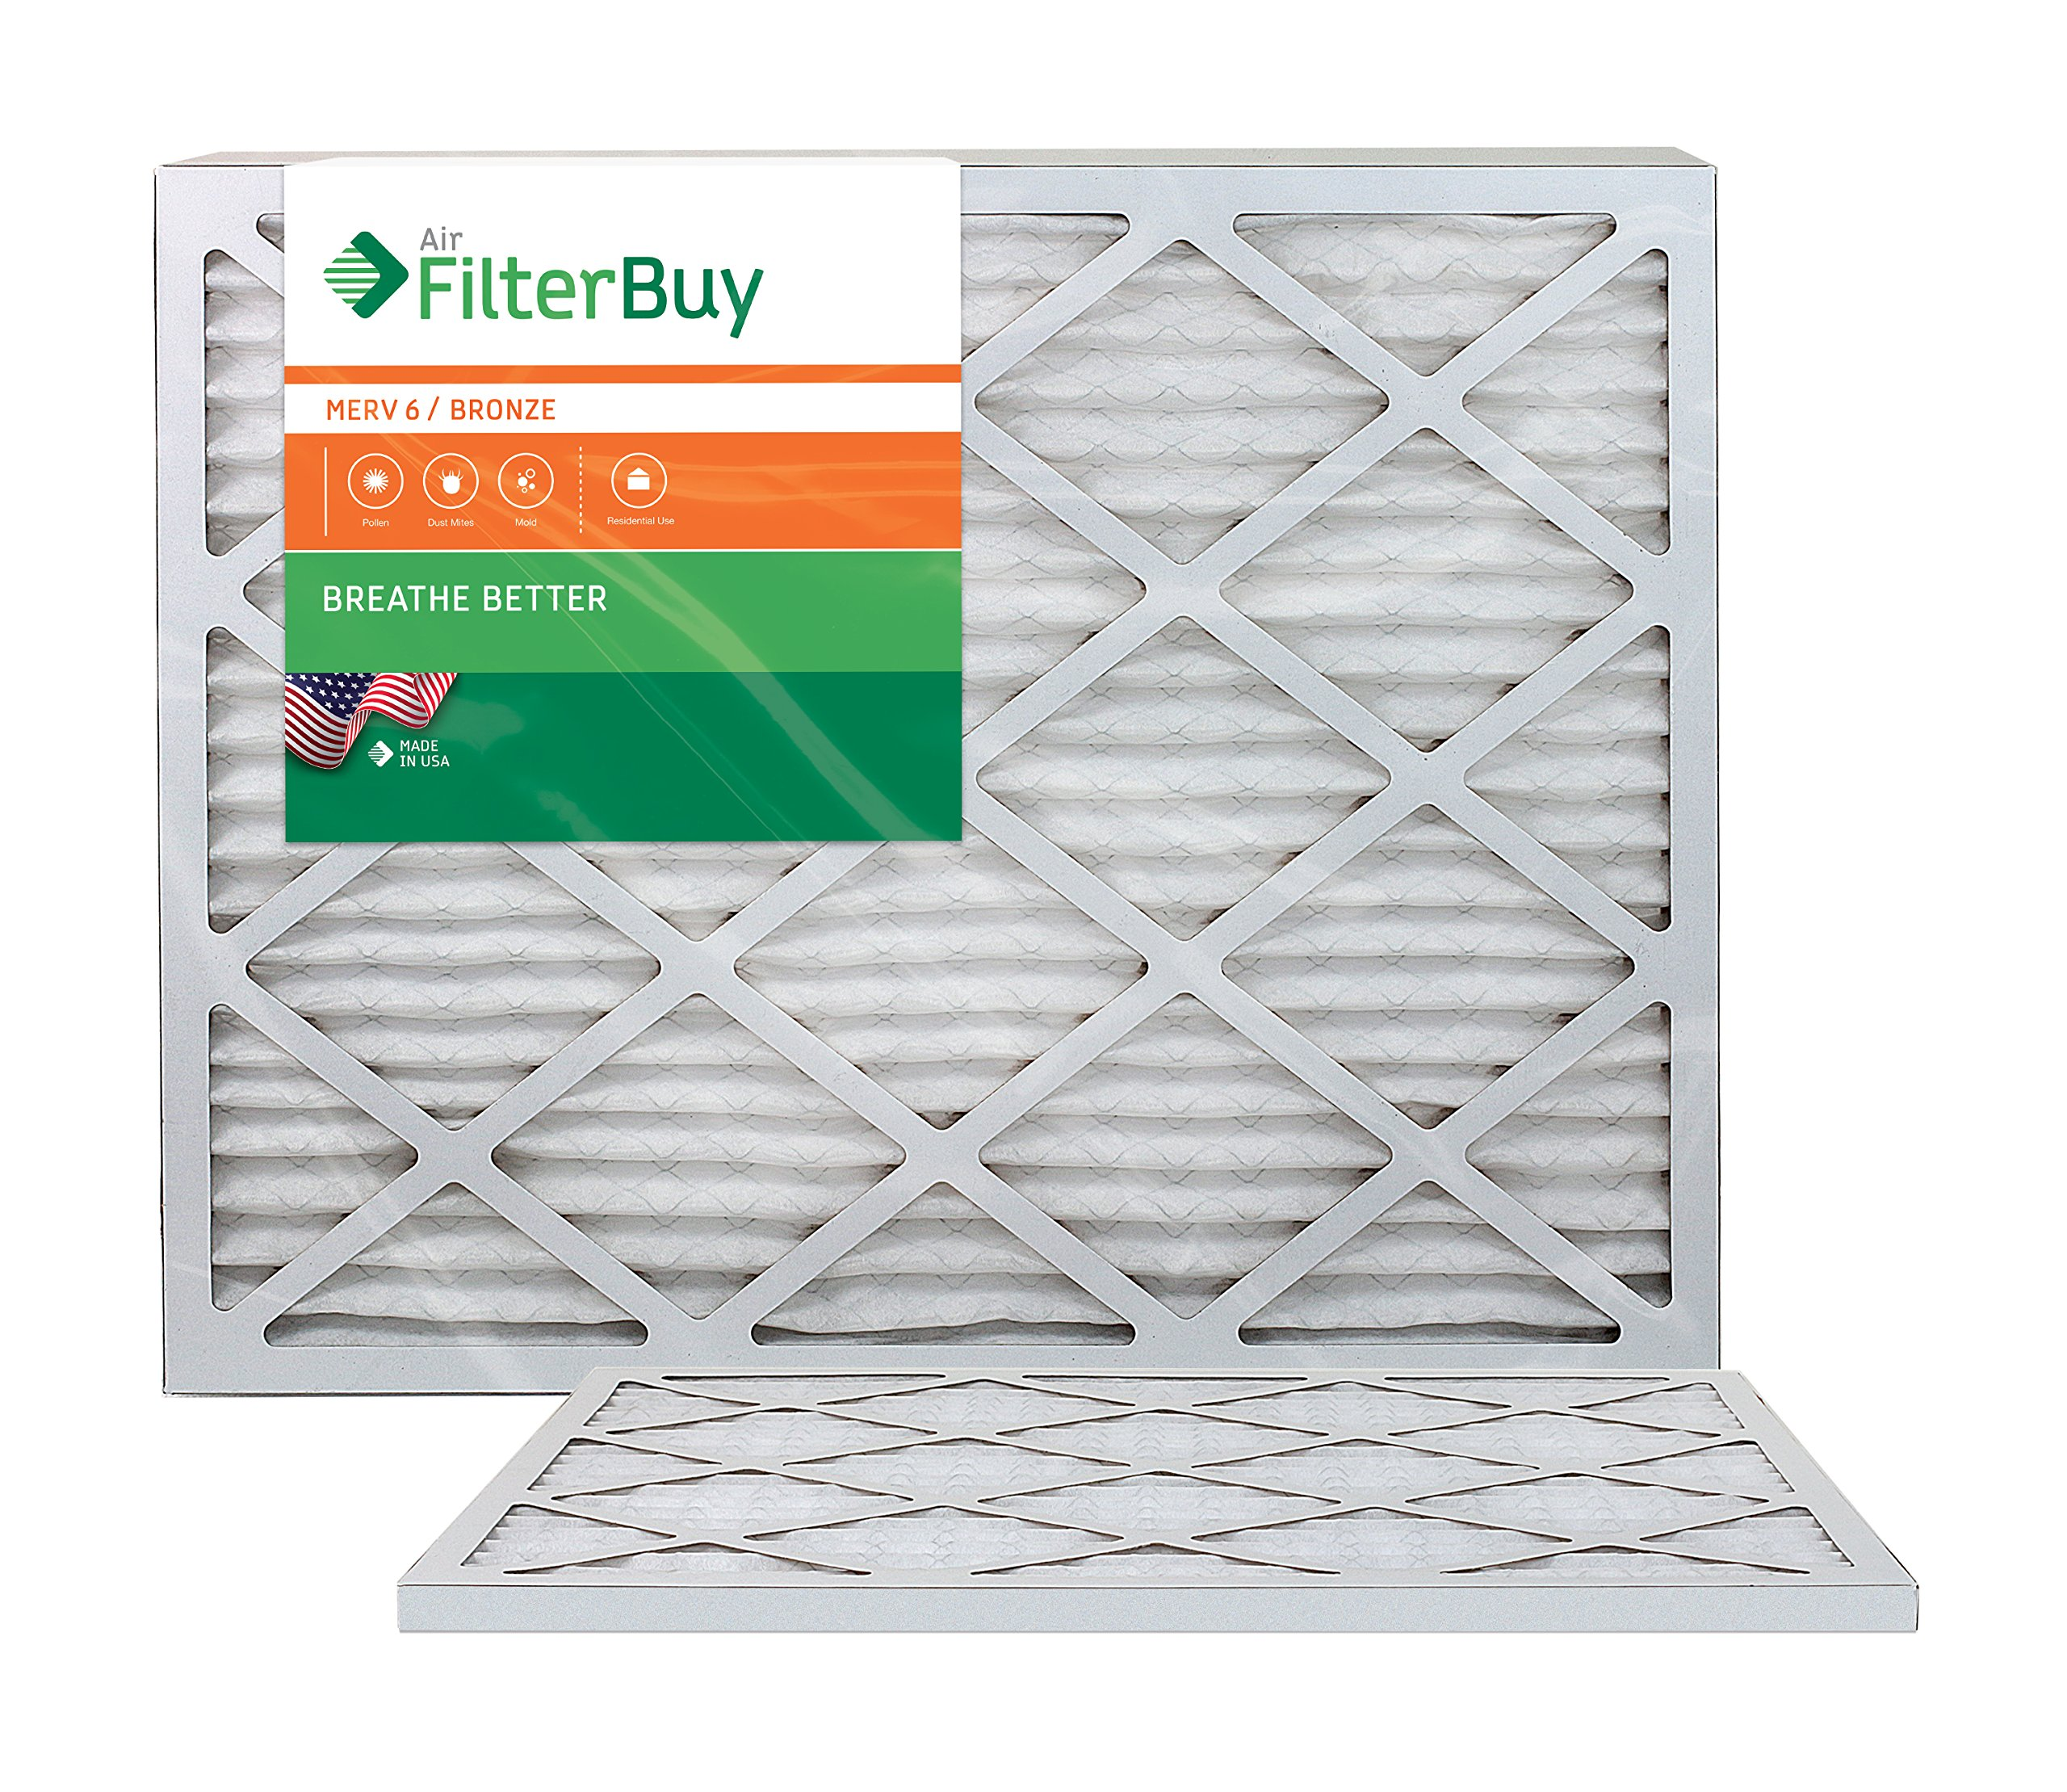 AFB Bronze MERV 6 25x28x1 Pleated AC Furnace Air Filter. Pack of 2 Filters. 100% produced in the USA. by FilterBuy